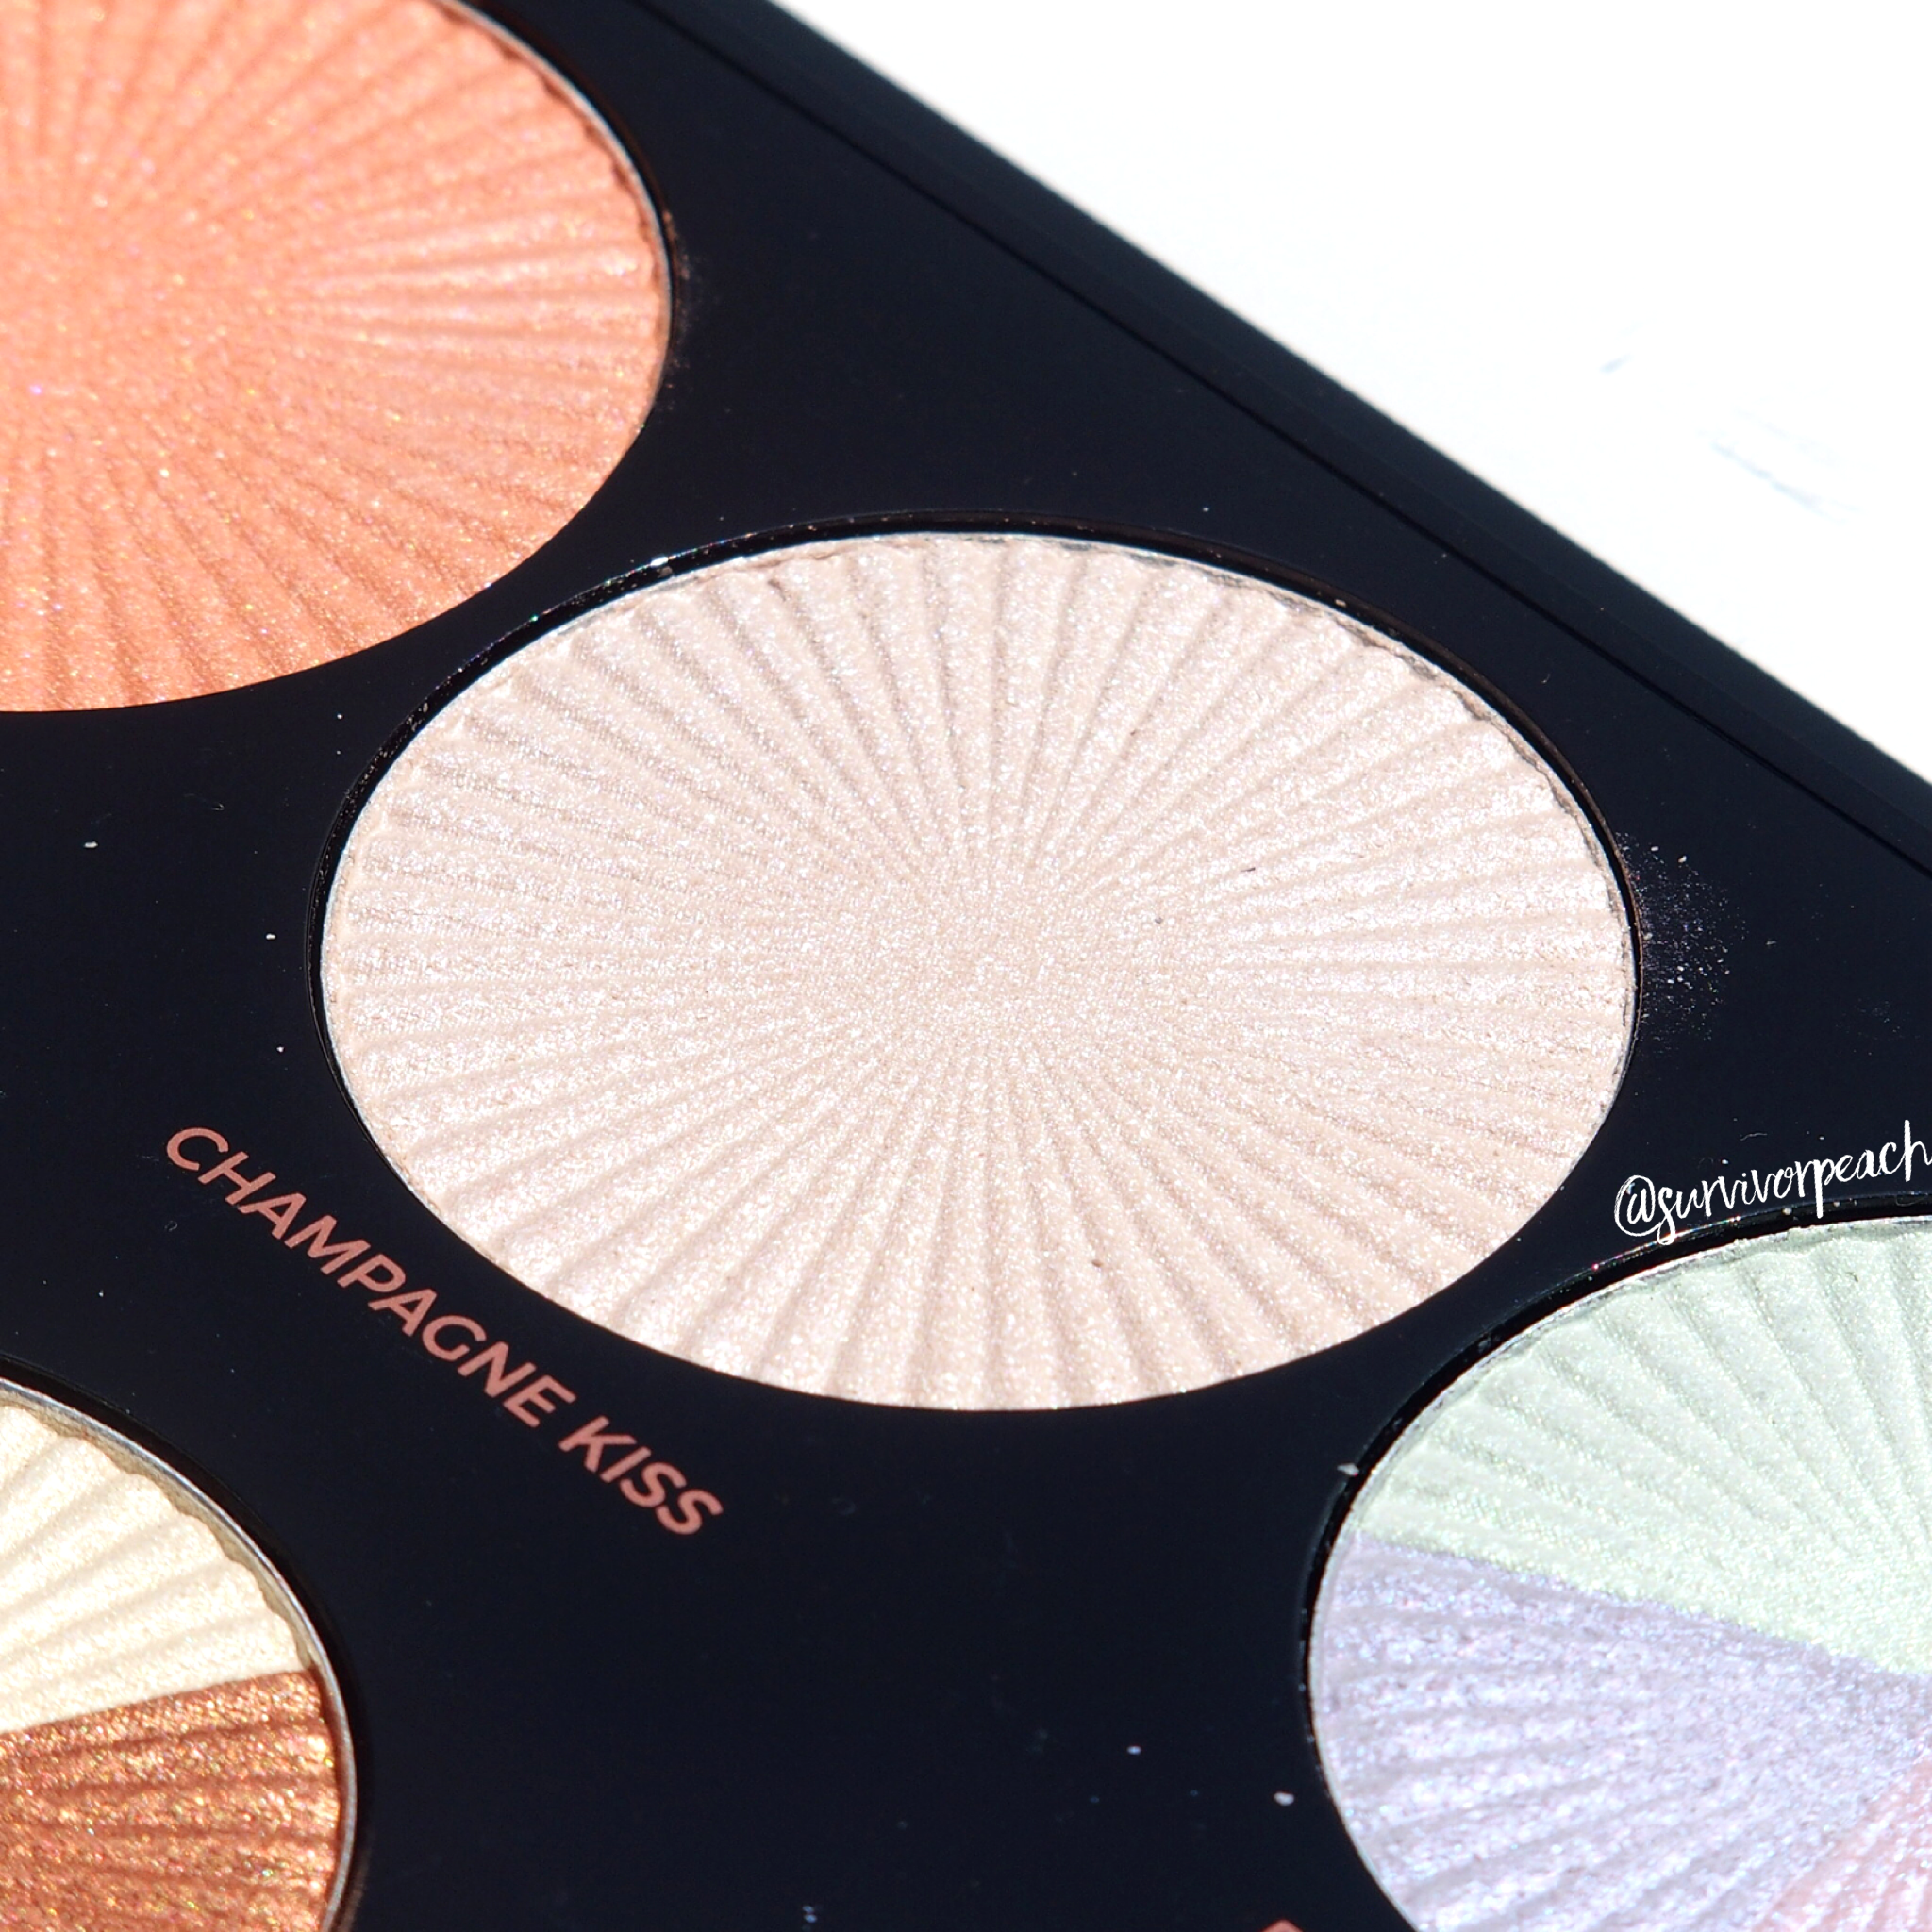 Makeup Revolution Pro HD Glow Getter palette shade Champagne Kiss